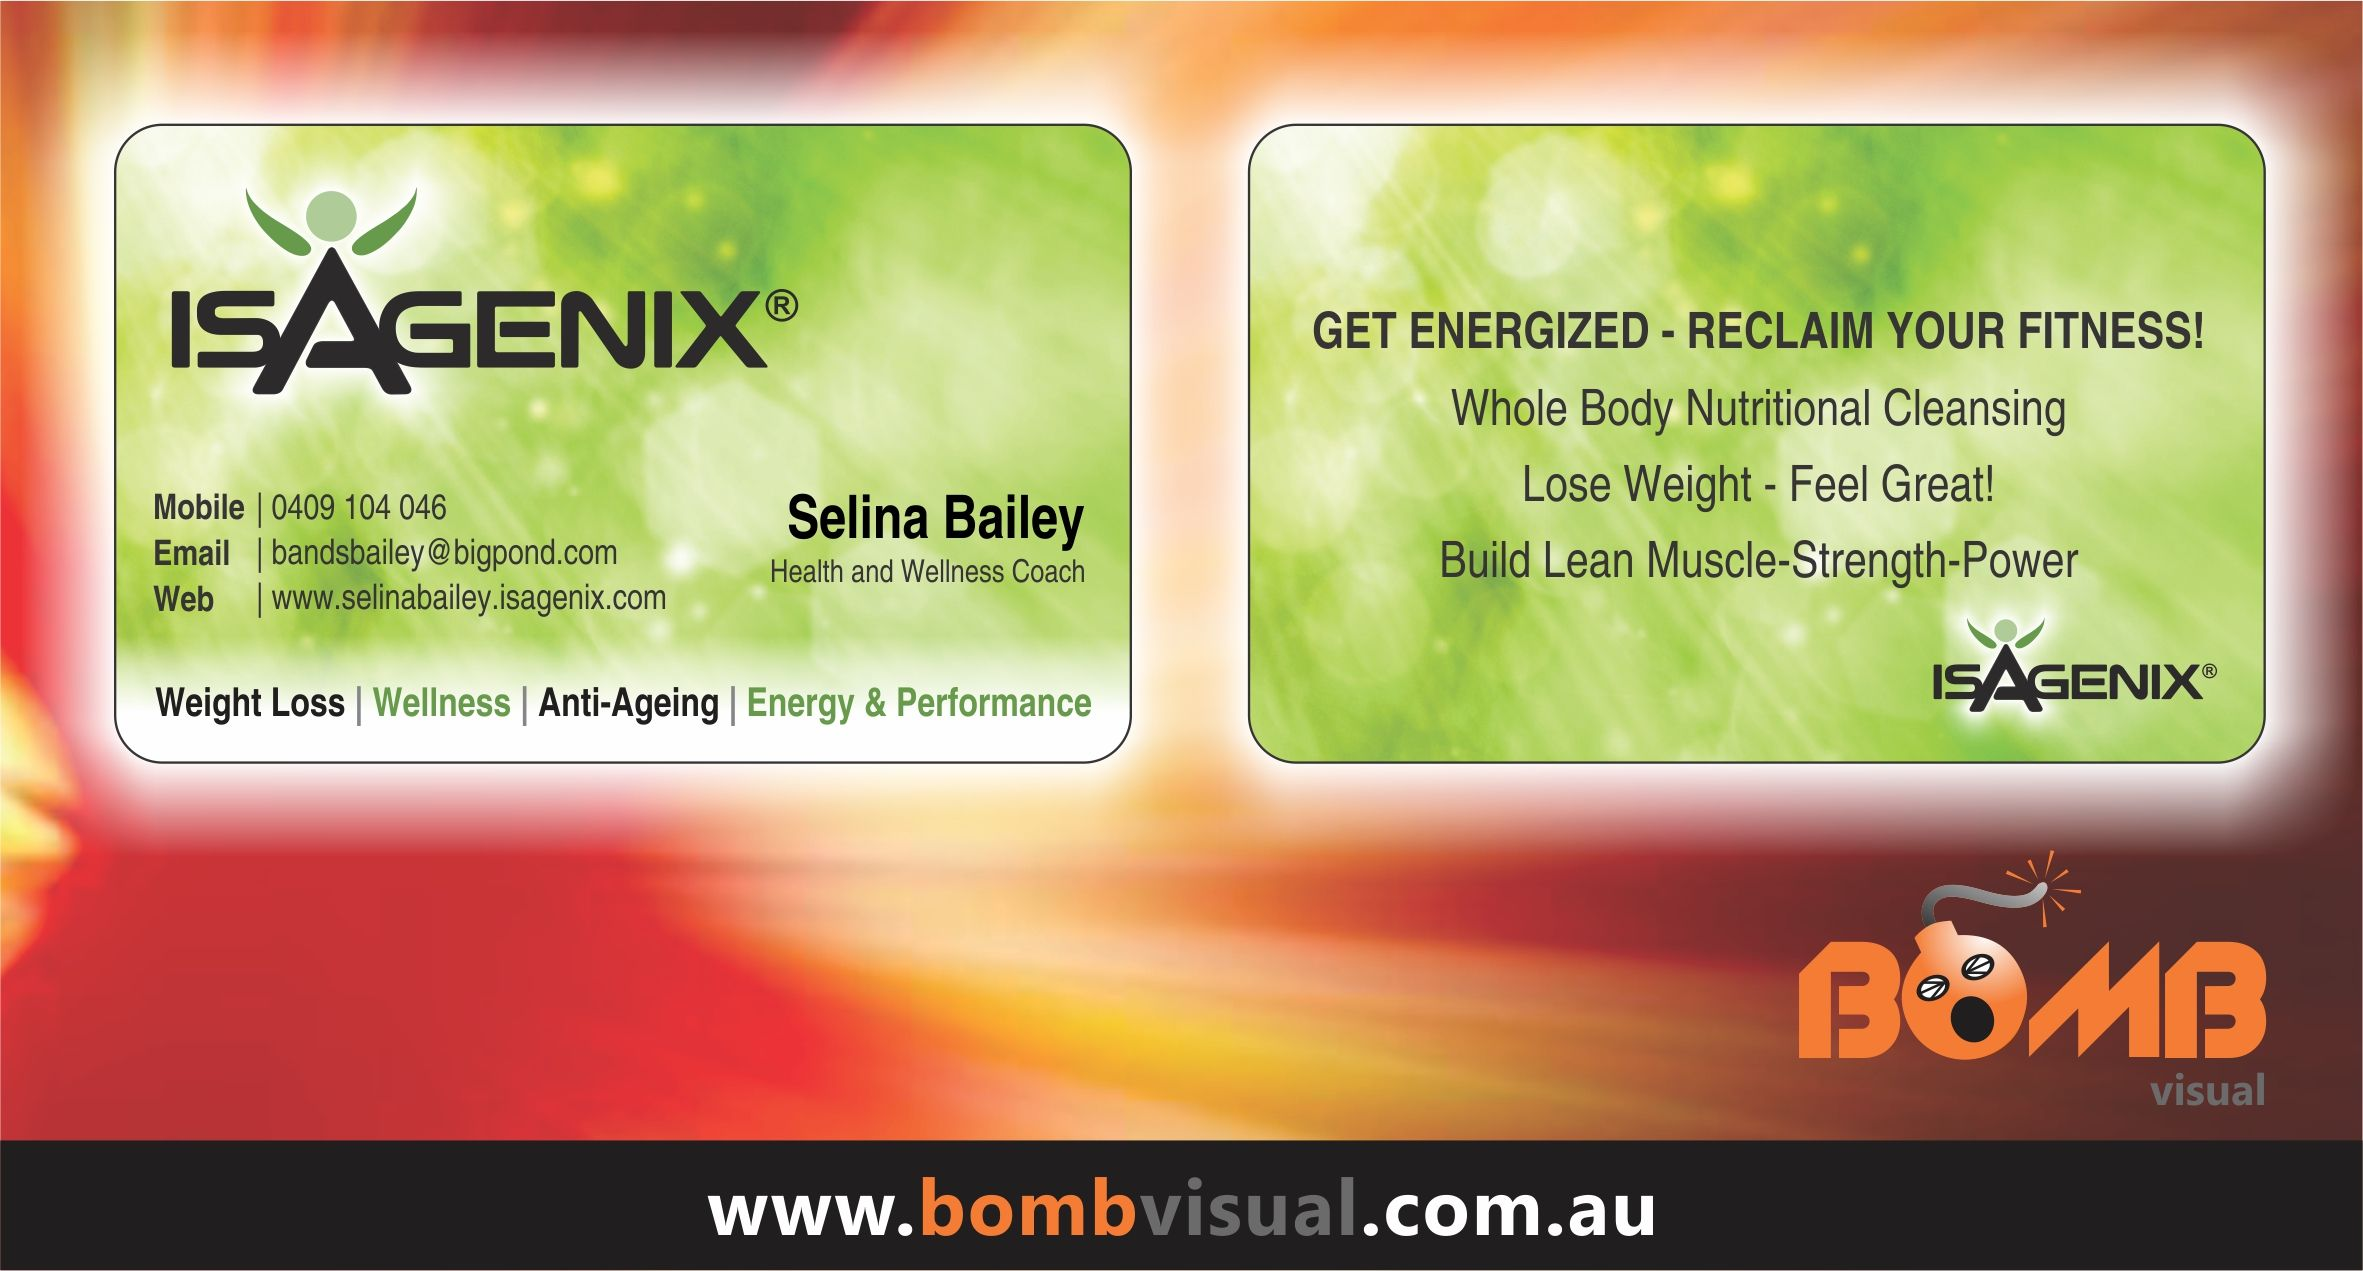 Isagenix Business Cards Australia Images - Card Design And Card Template